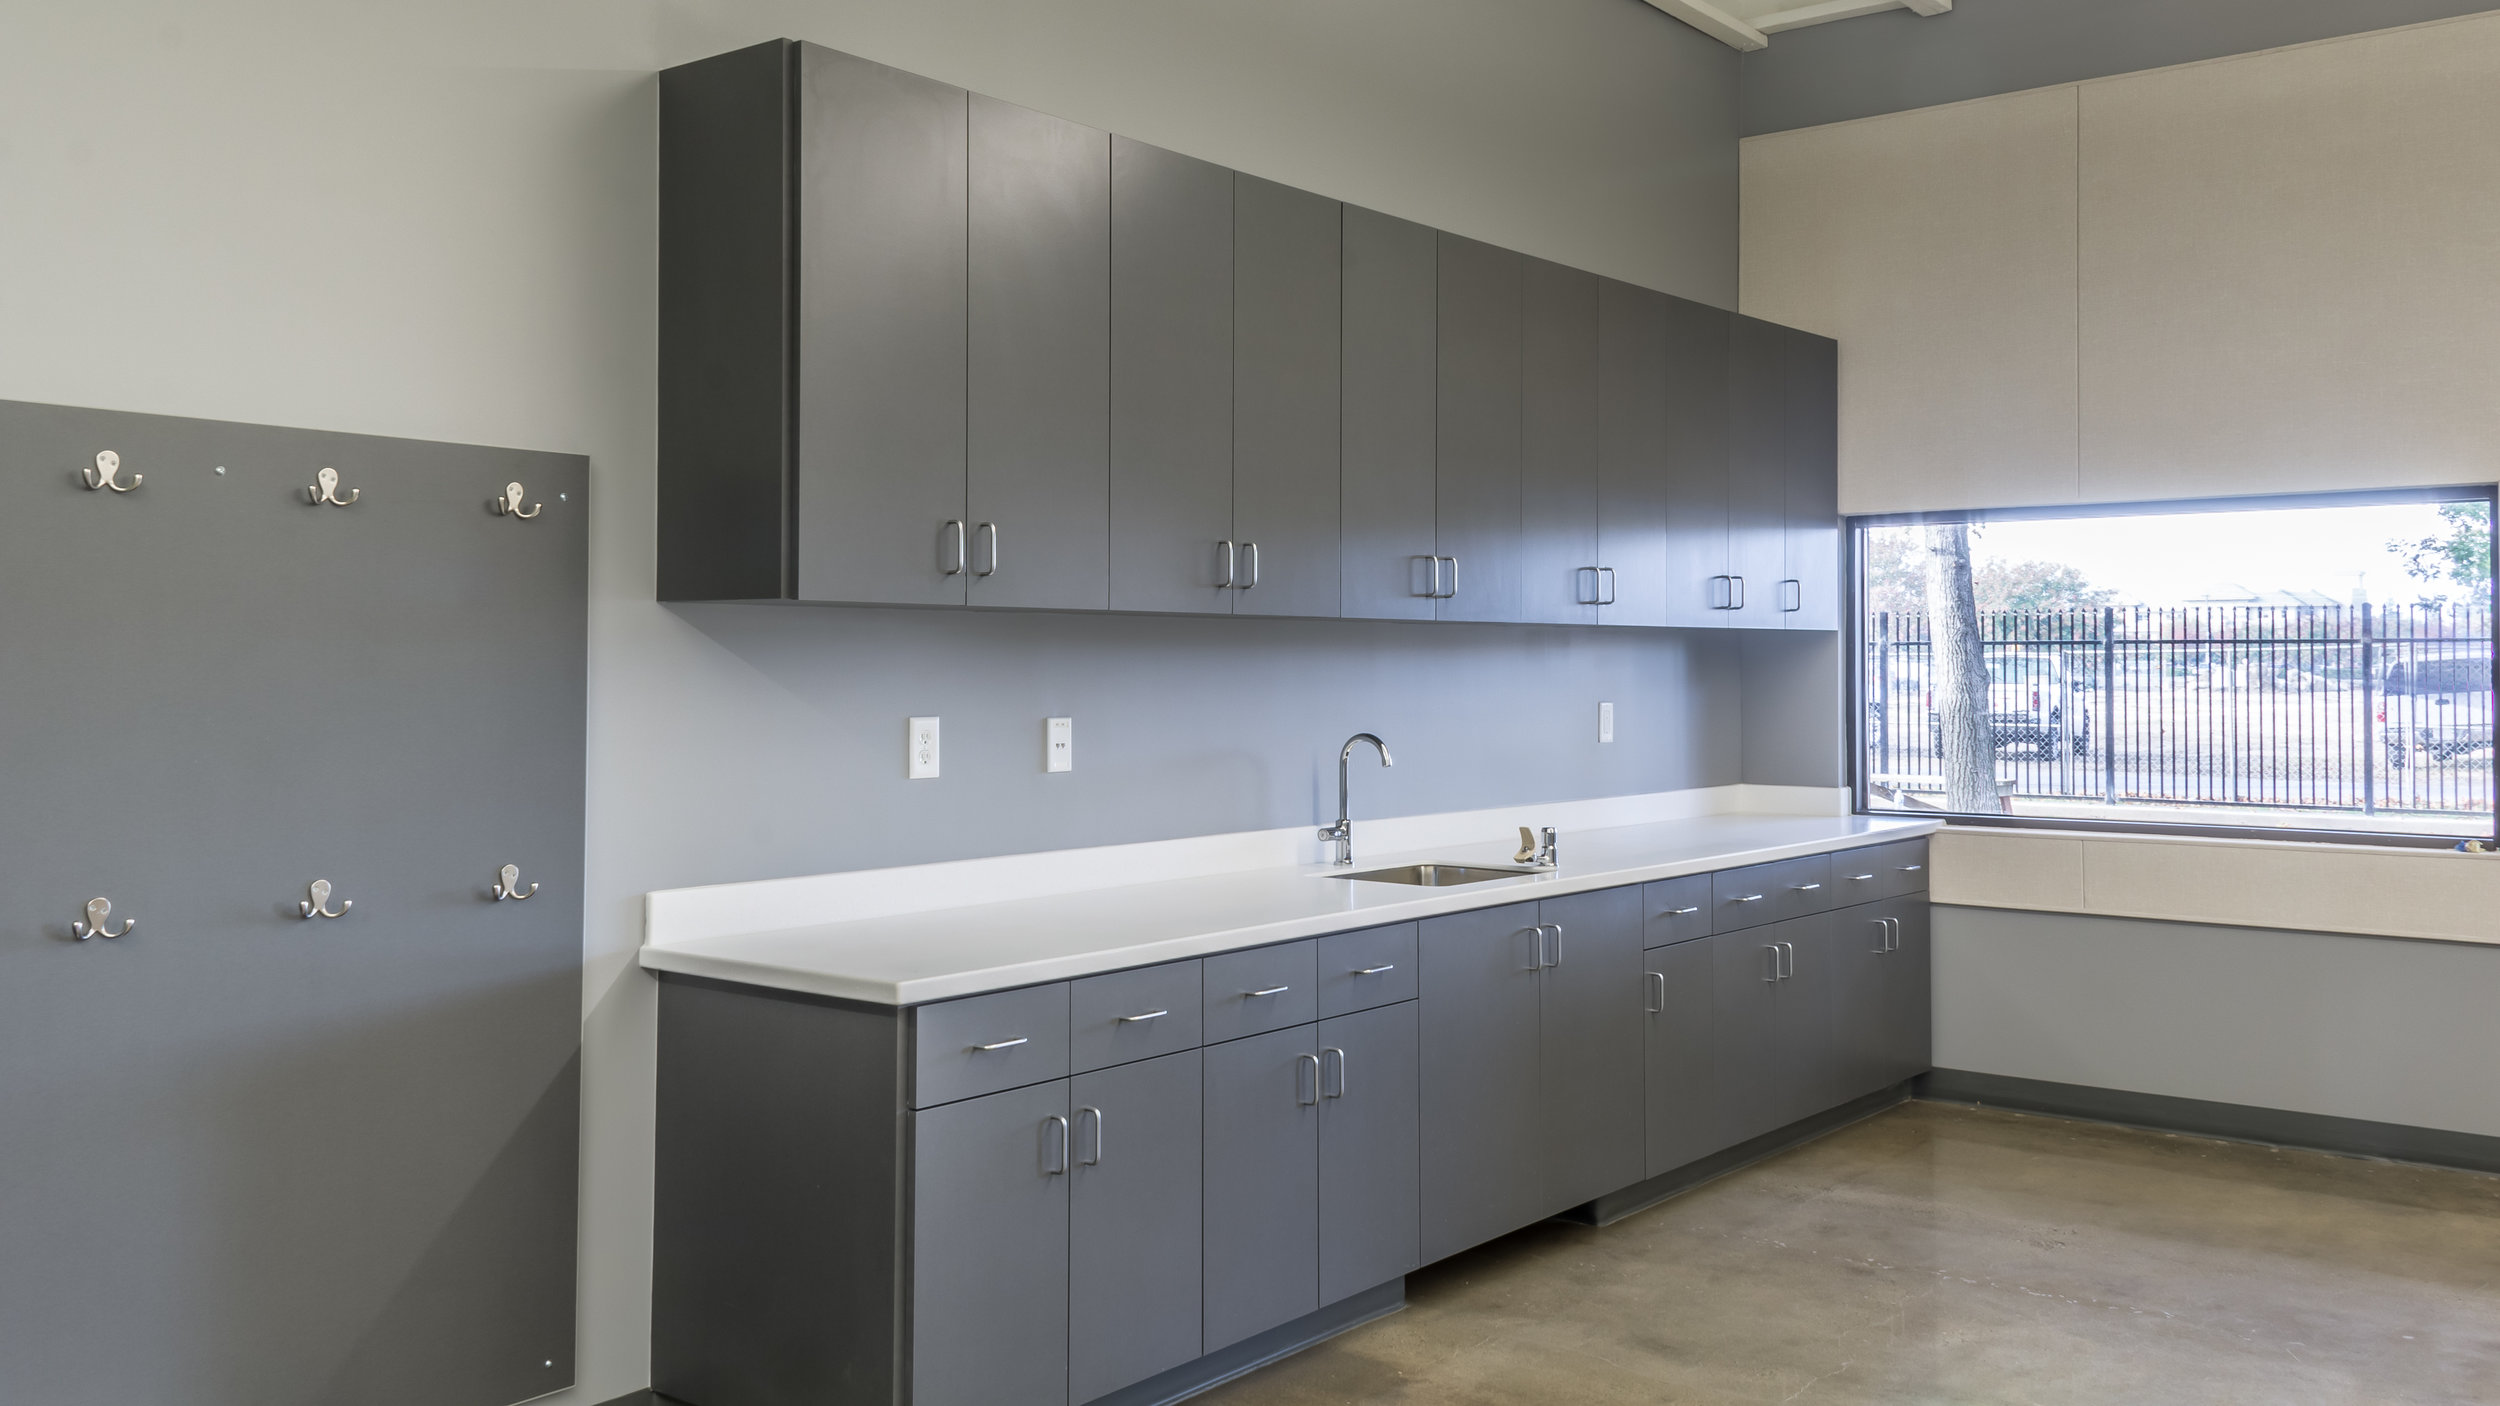 Commercial Casework K M Cabinets Countertops